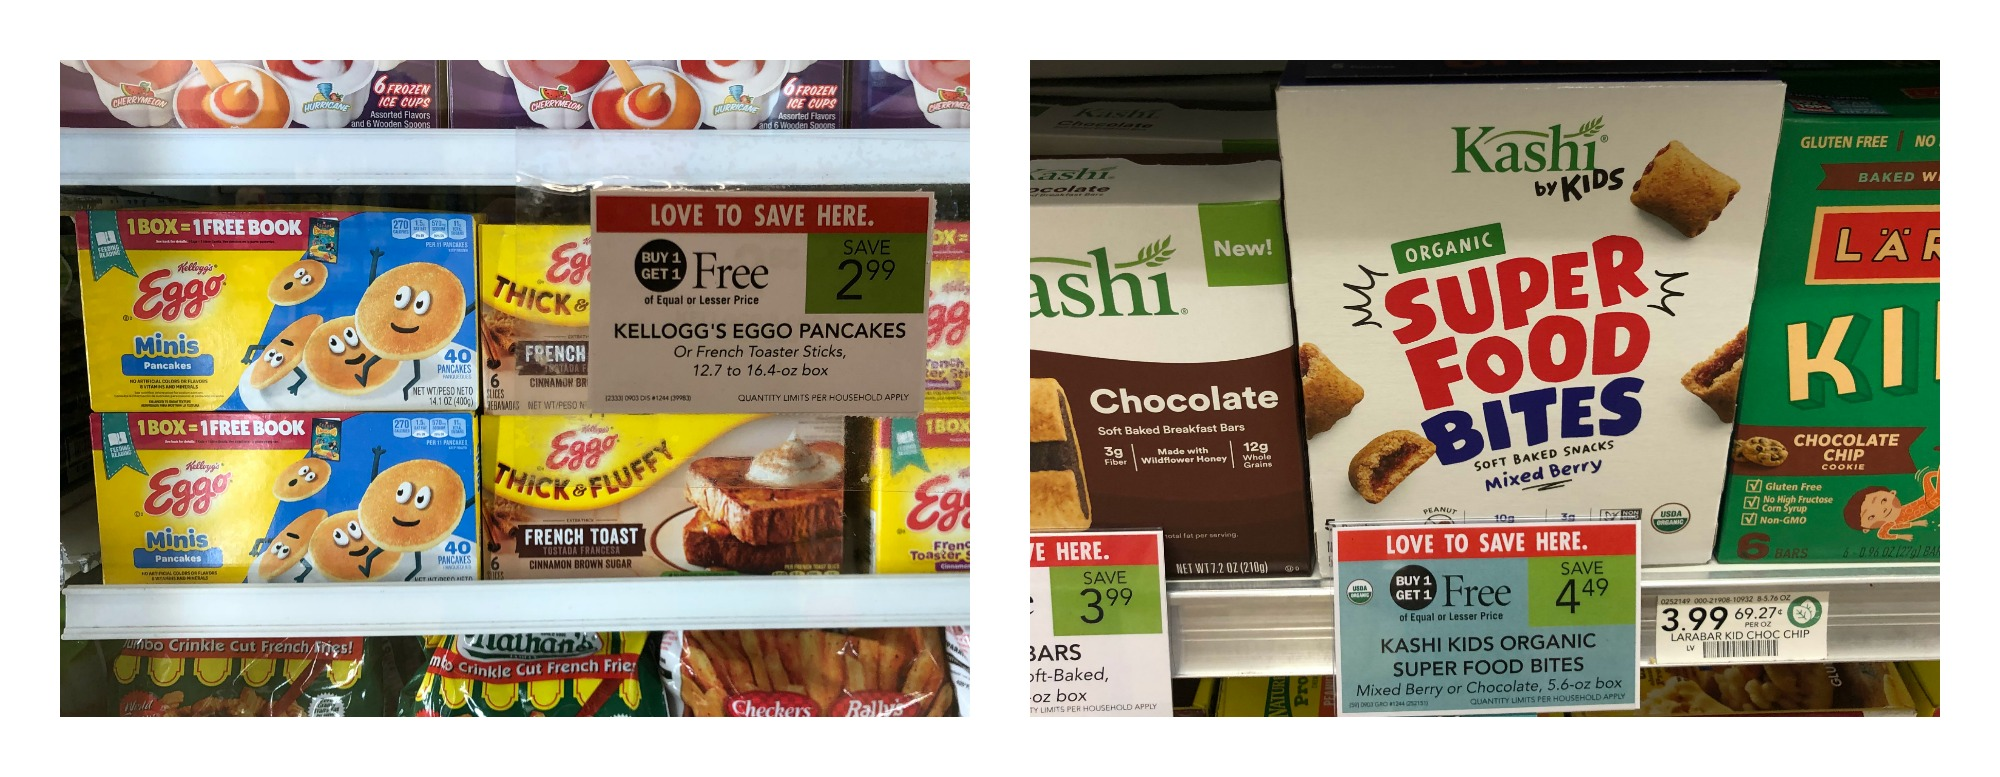 Publix Deals That Correspond With The Kellogg's Feeding Reading Program...Great Prices + Free Books! on I Heart Publix 1